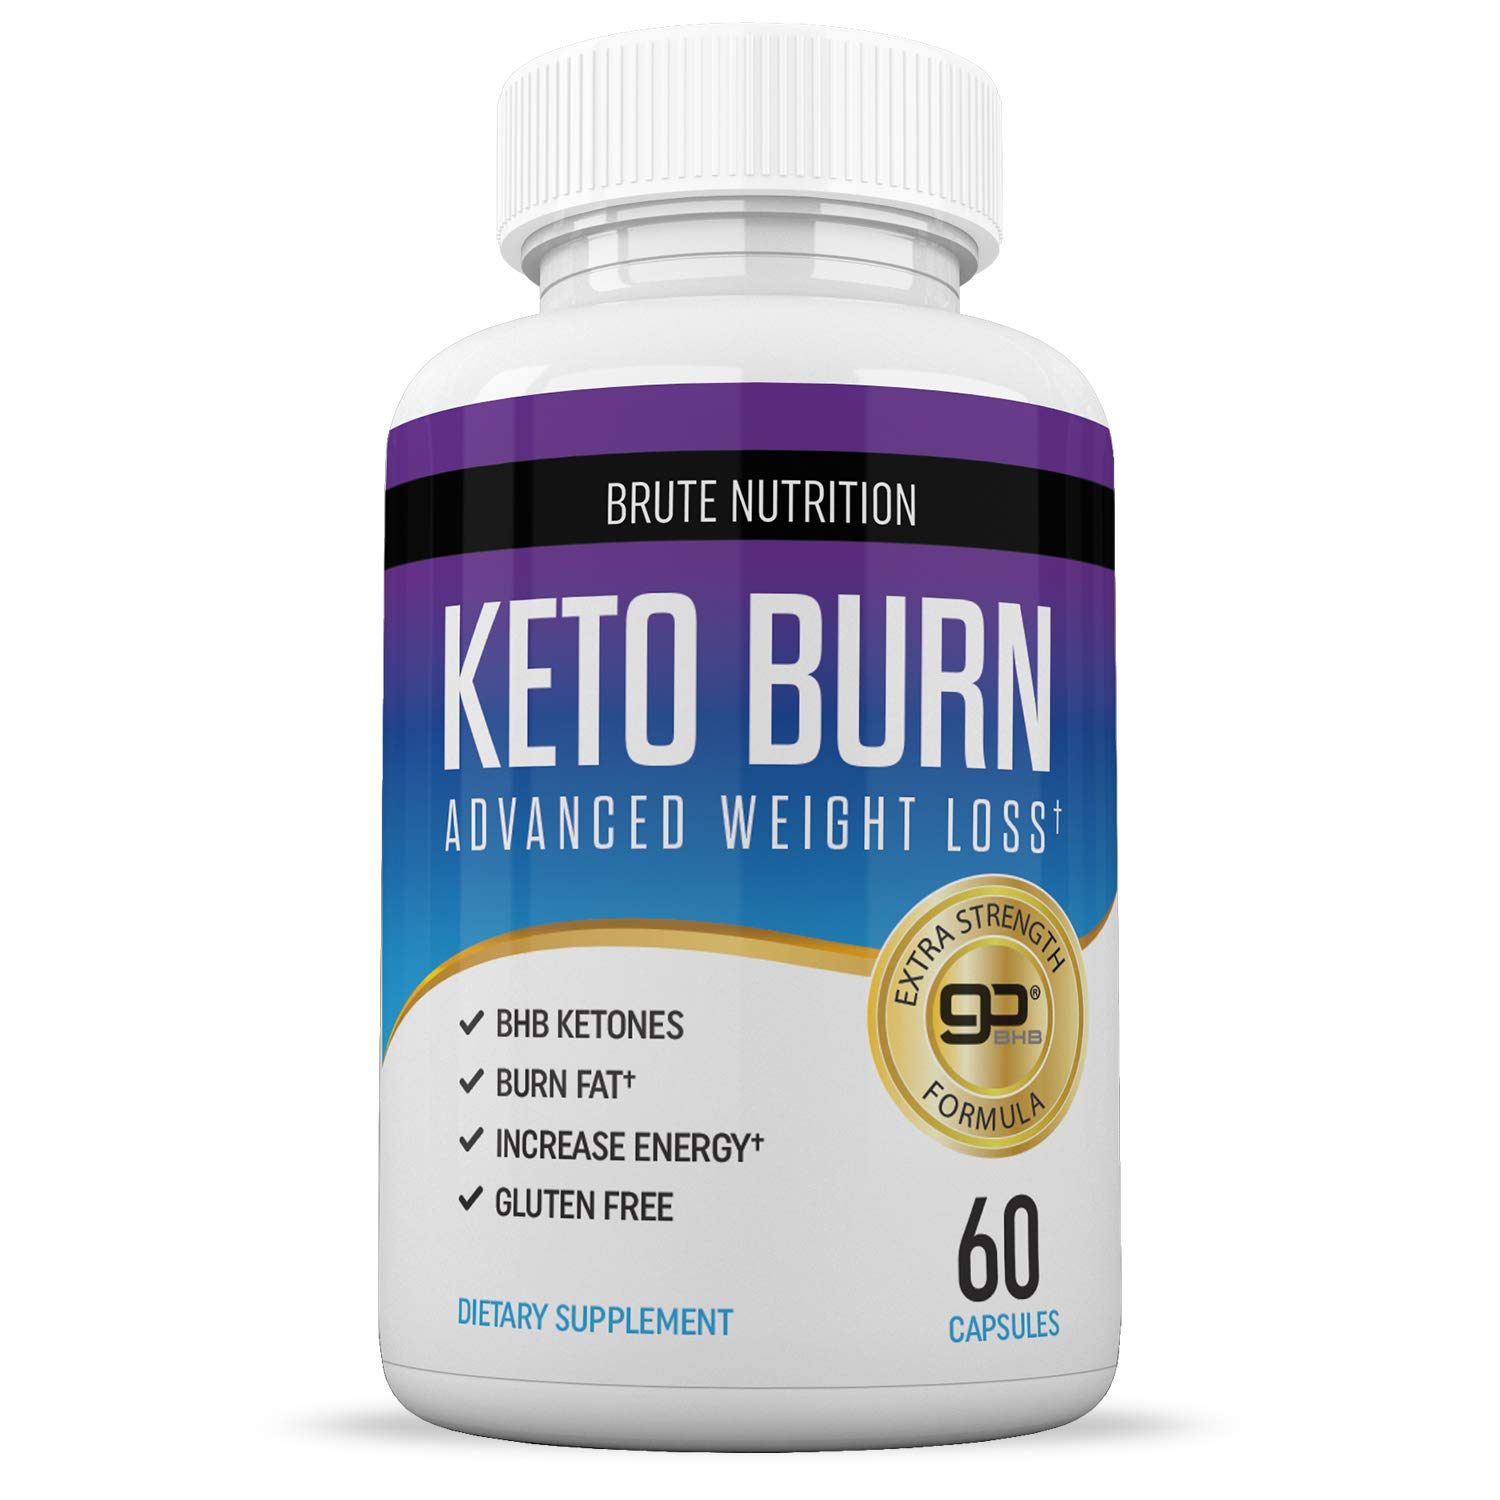 Brute Nutrition - Keto Weight Loss Supplement